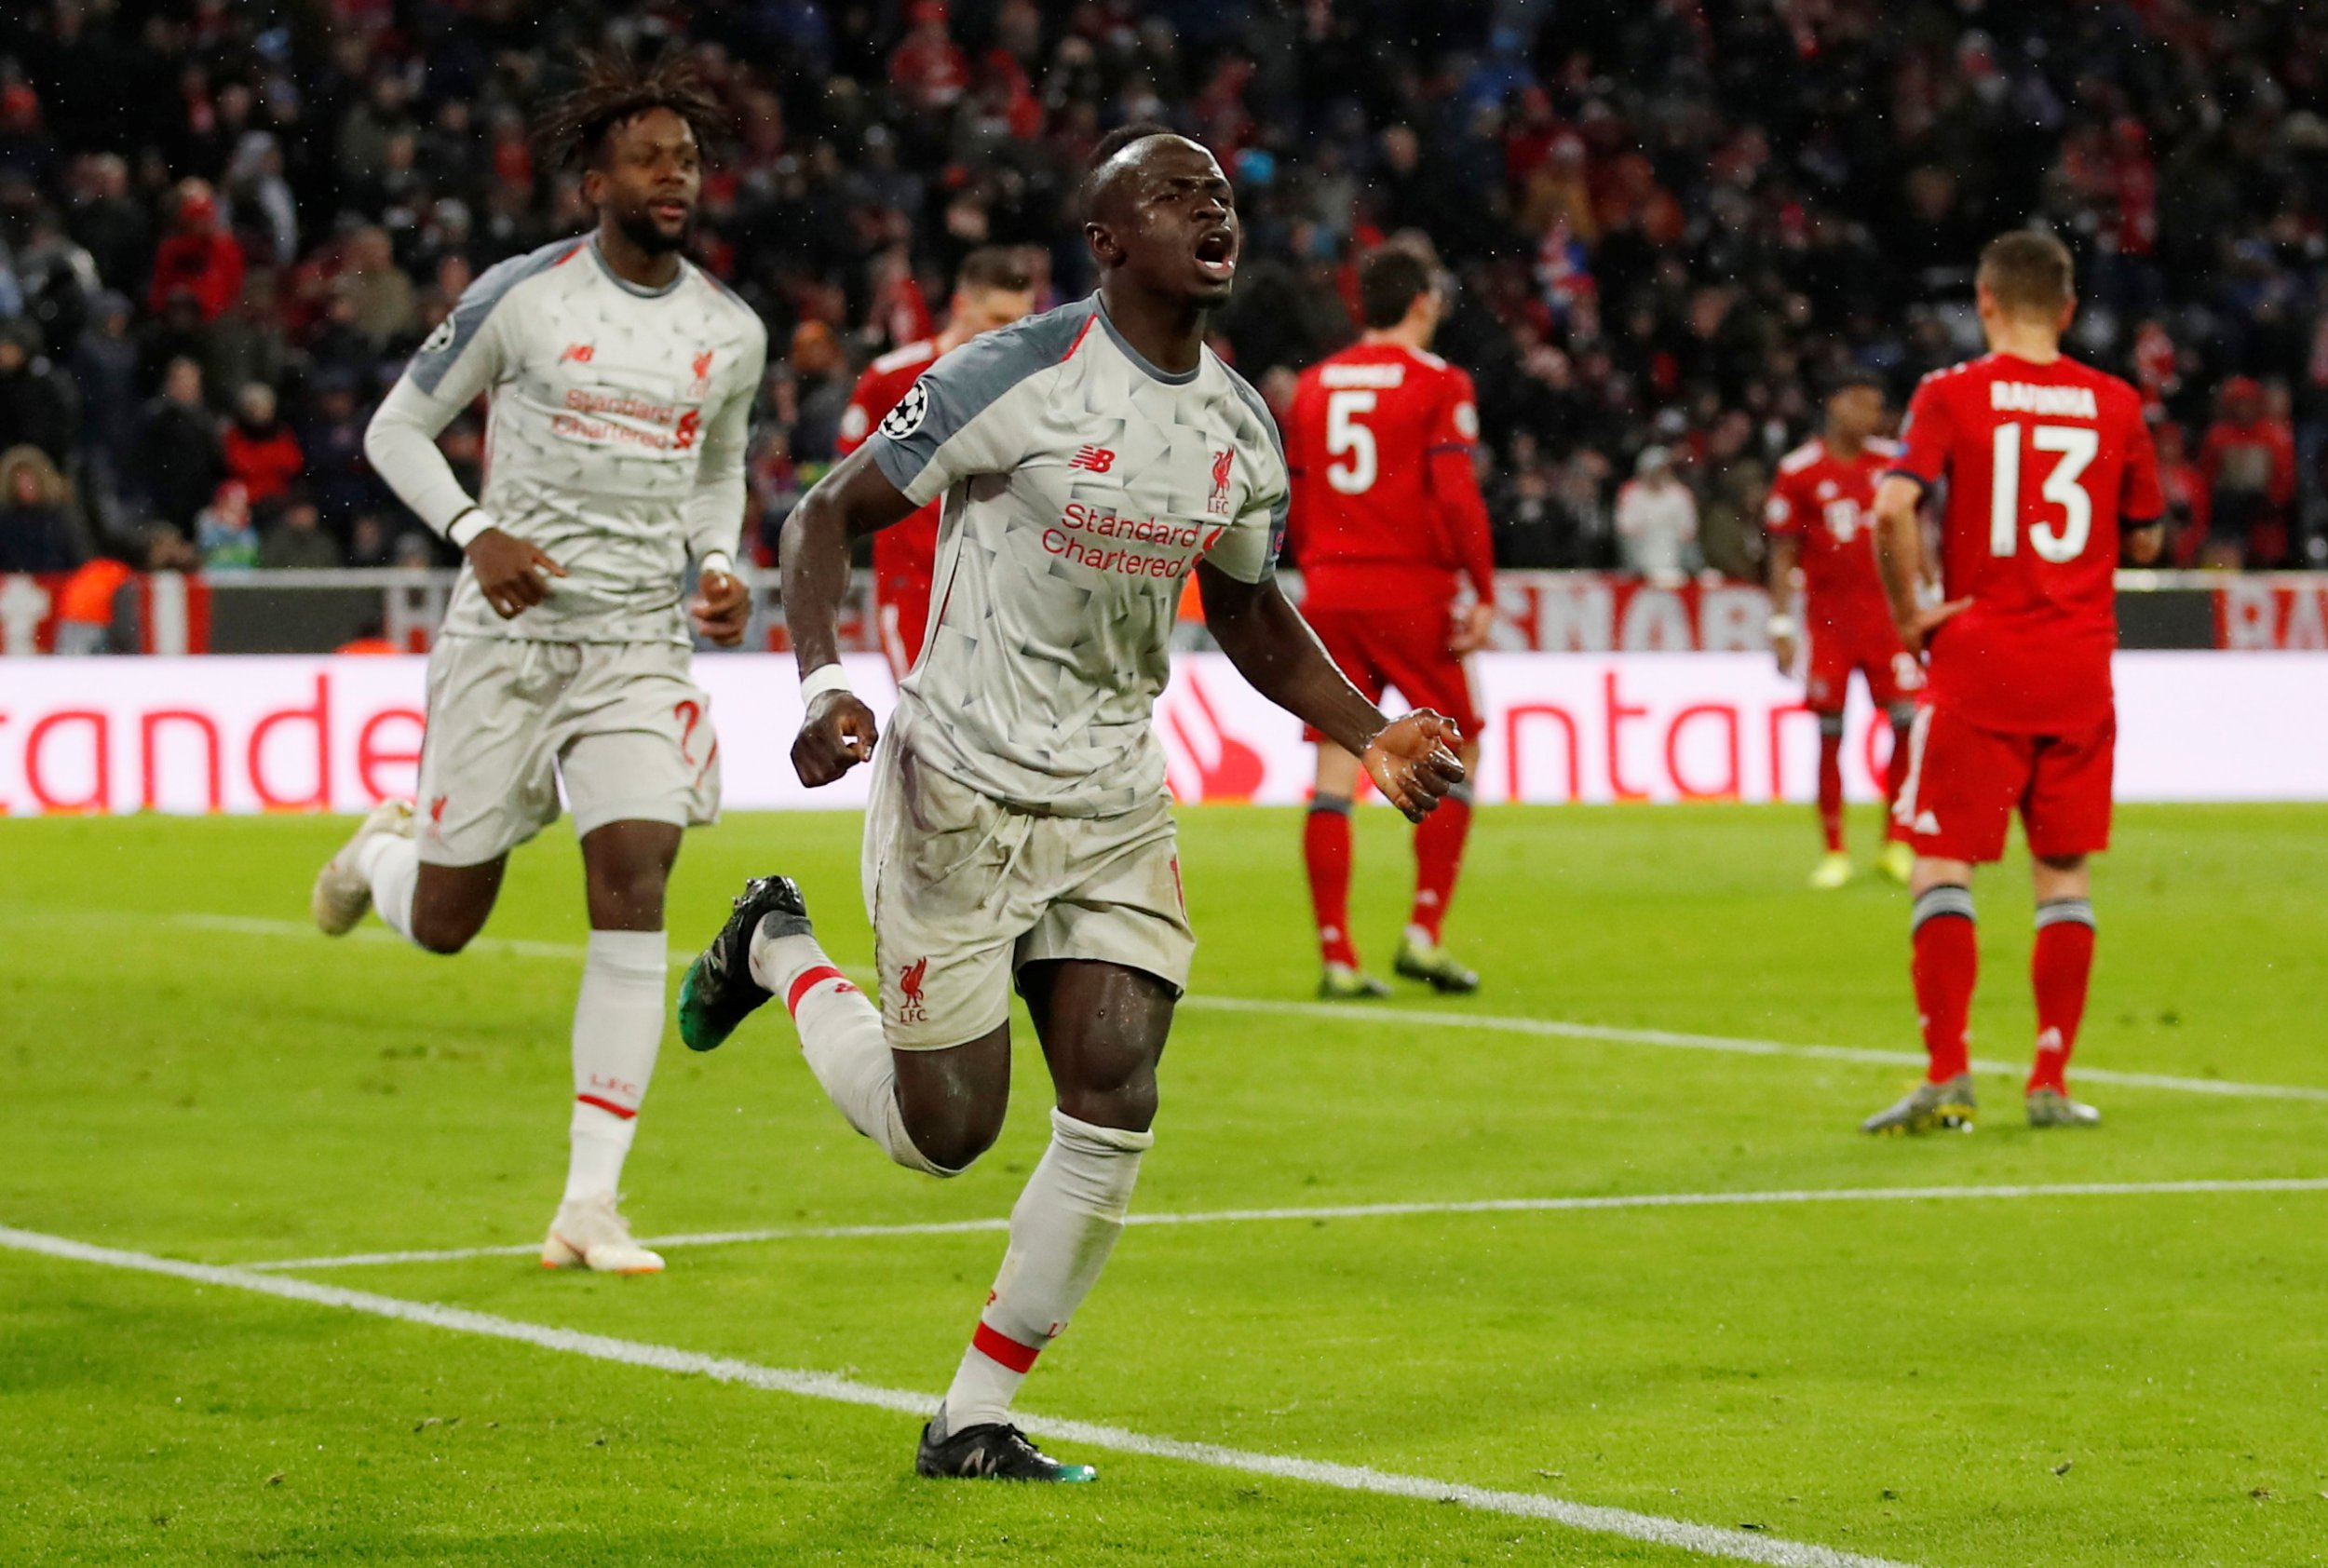 Soccer Football - Champions League - Round of 16 Second Leg - Bayern Munich v Liverpool - Allianz Arena, Munich, Germany - March 13, 2019 Liverpool's Sadio Mane celebrates scoring their third goal with Divock Origi Action Images via Reuters/Andrew Boyers